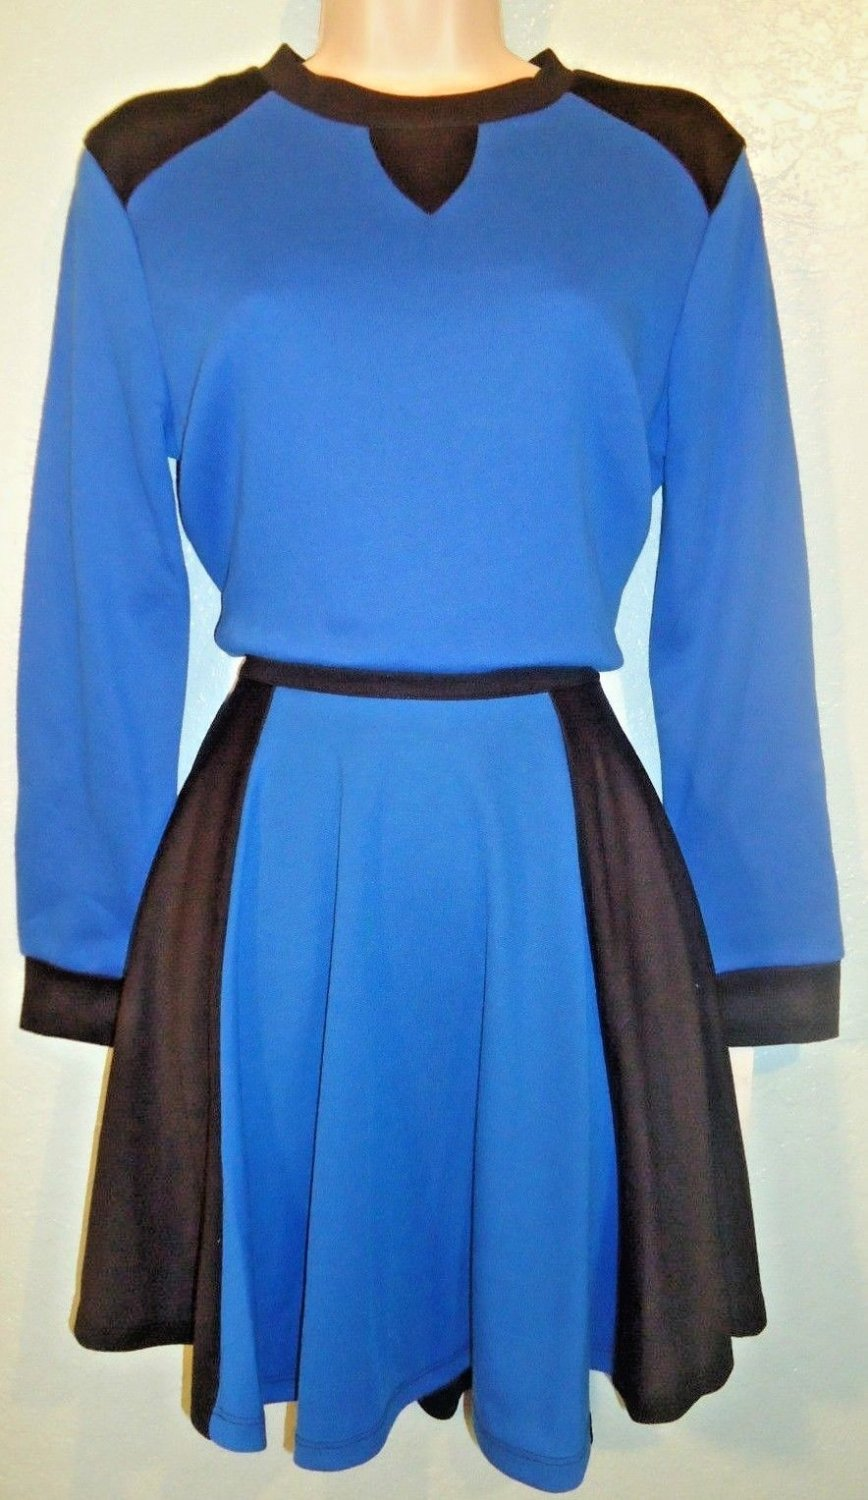 M STYLE LAB - 2 PIECE - BLUE - BALLET - OUTFIT - PULLOVER - SKIRT - NEW - MEDIUM